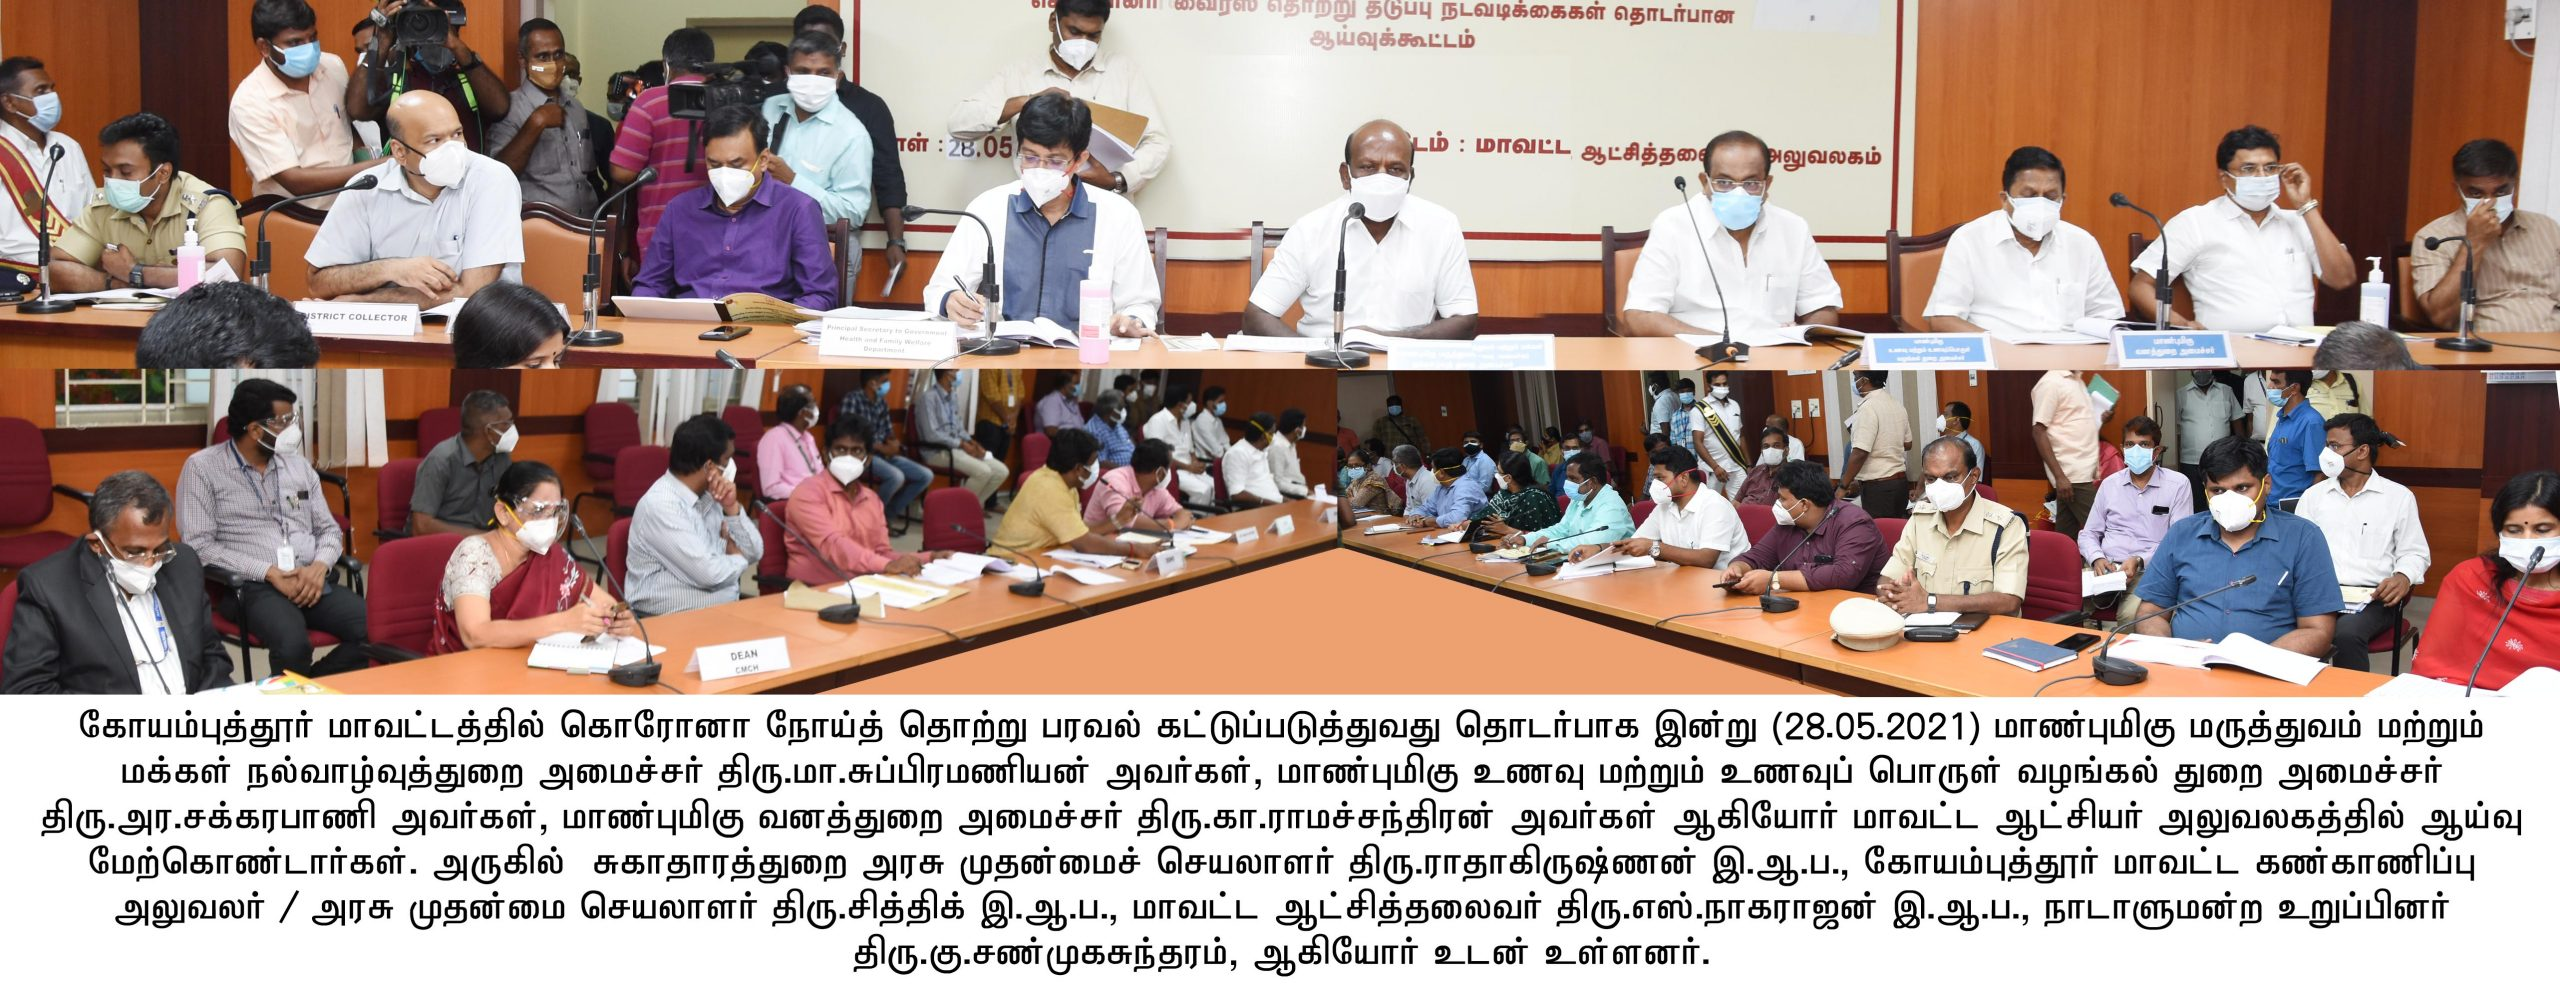 Corona Virus Prevention work review meeting conducted by Honble Minister for Health and Family Welfare